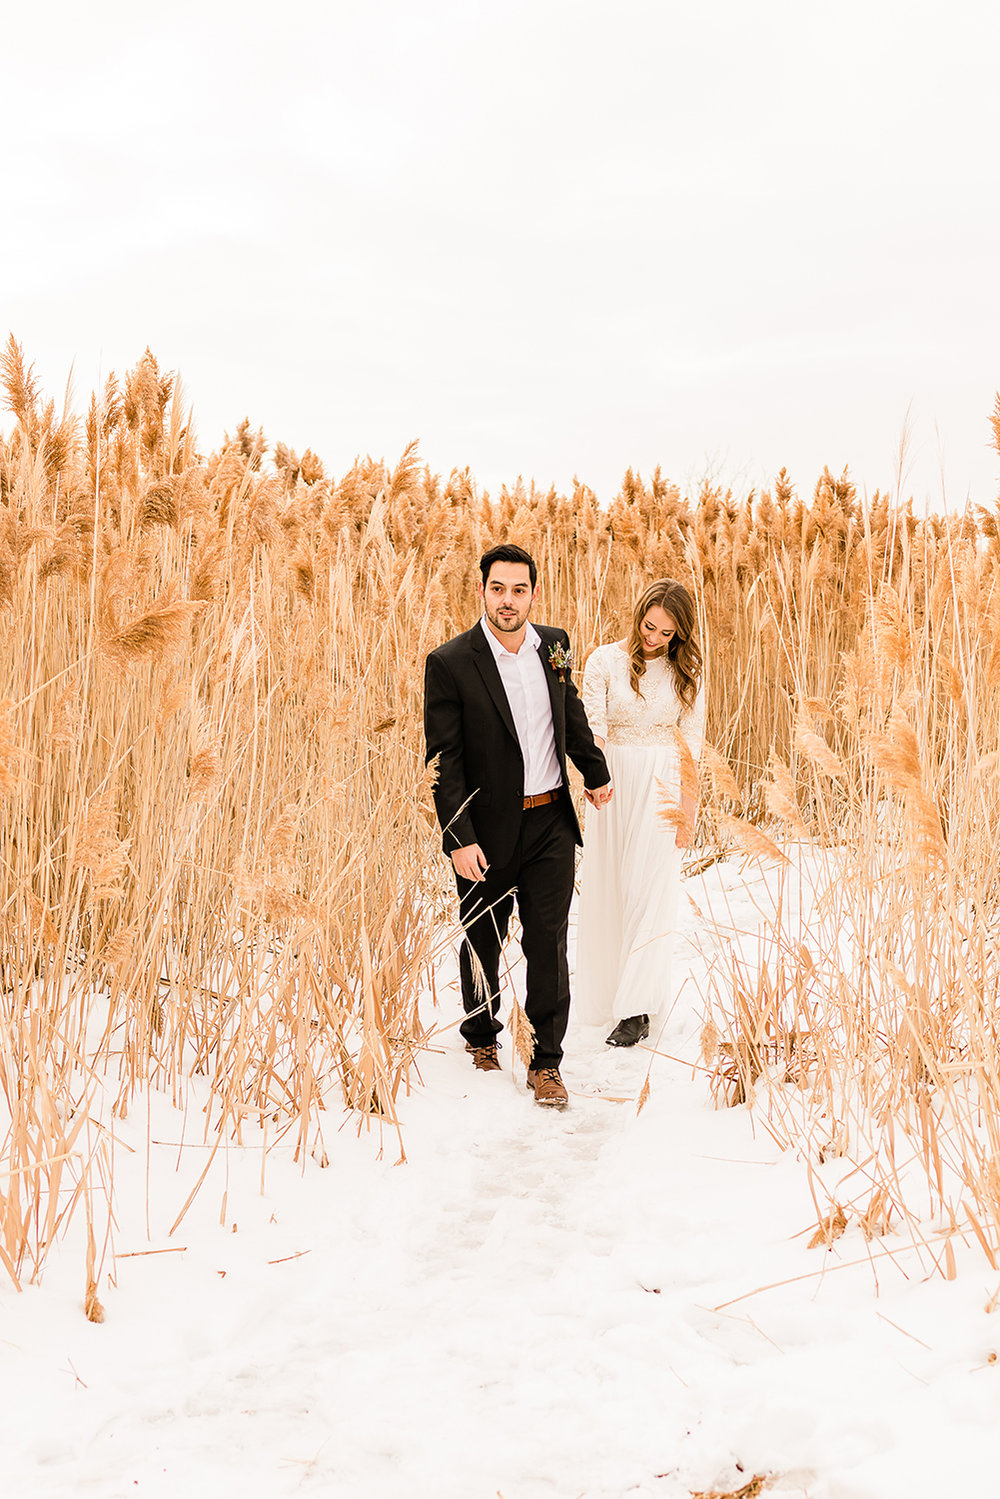 colorado-winter-elopment-colorado-springs-wedding-photographer-14.jpg